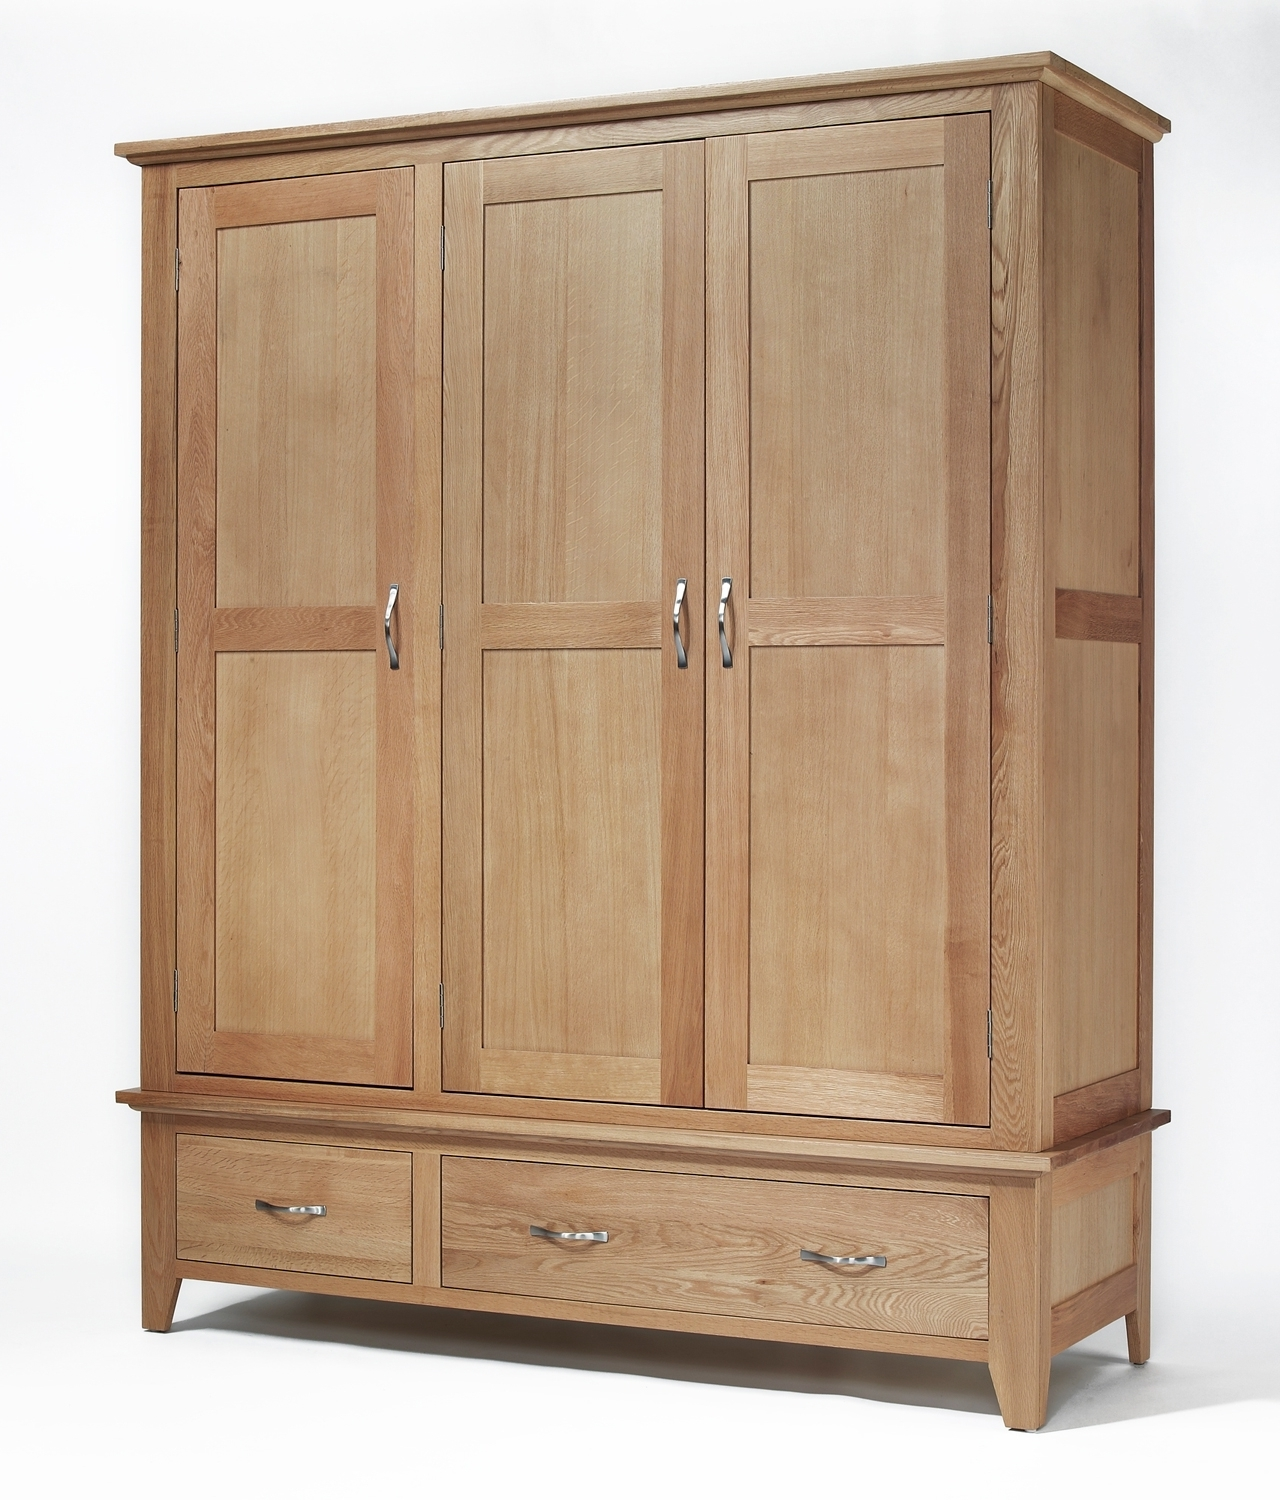 Sherwood Oak Triple Wardrobe With 2 Drawers (View 15 of 15)